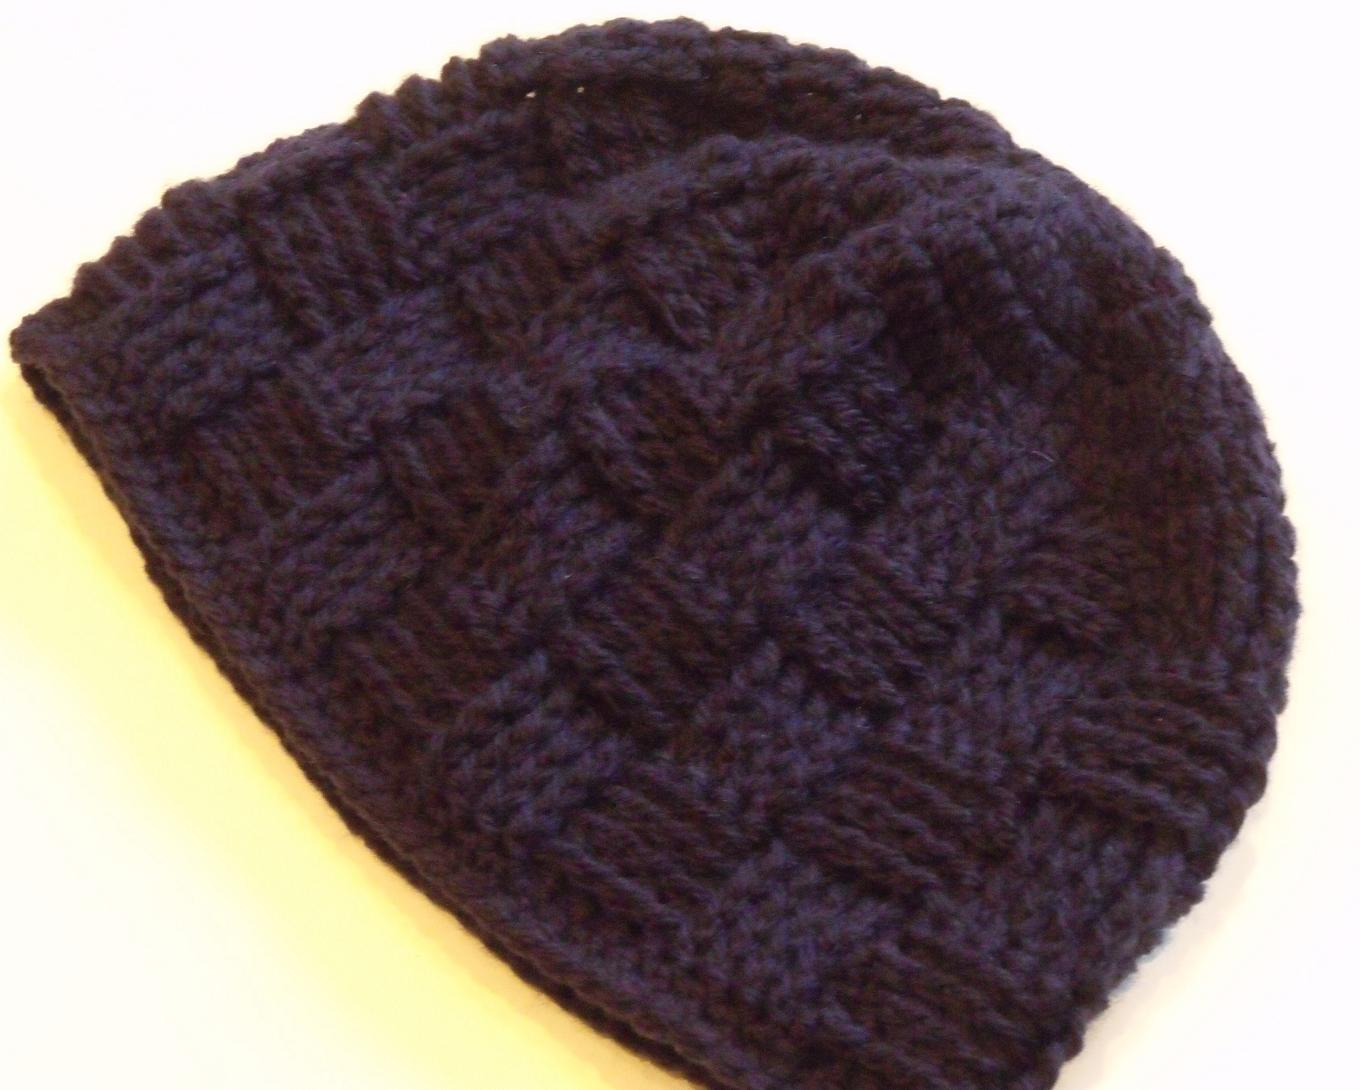 Basket Weave Hat Pattern Free : Basketweave crochet pattern free patterns